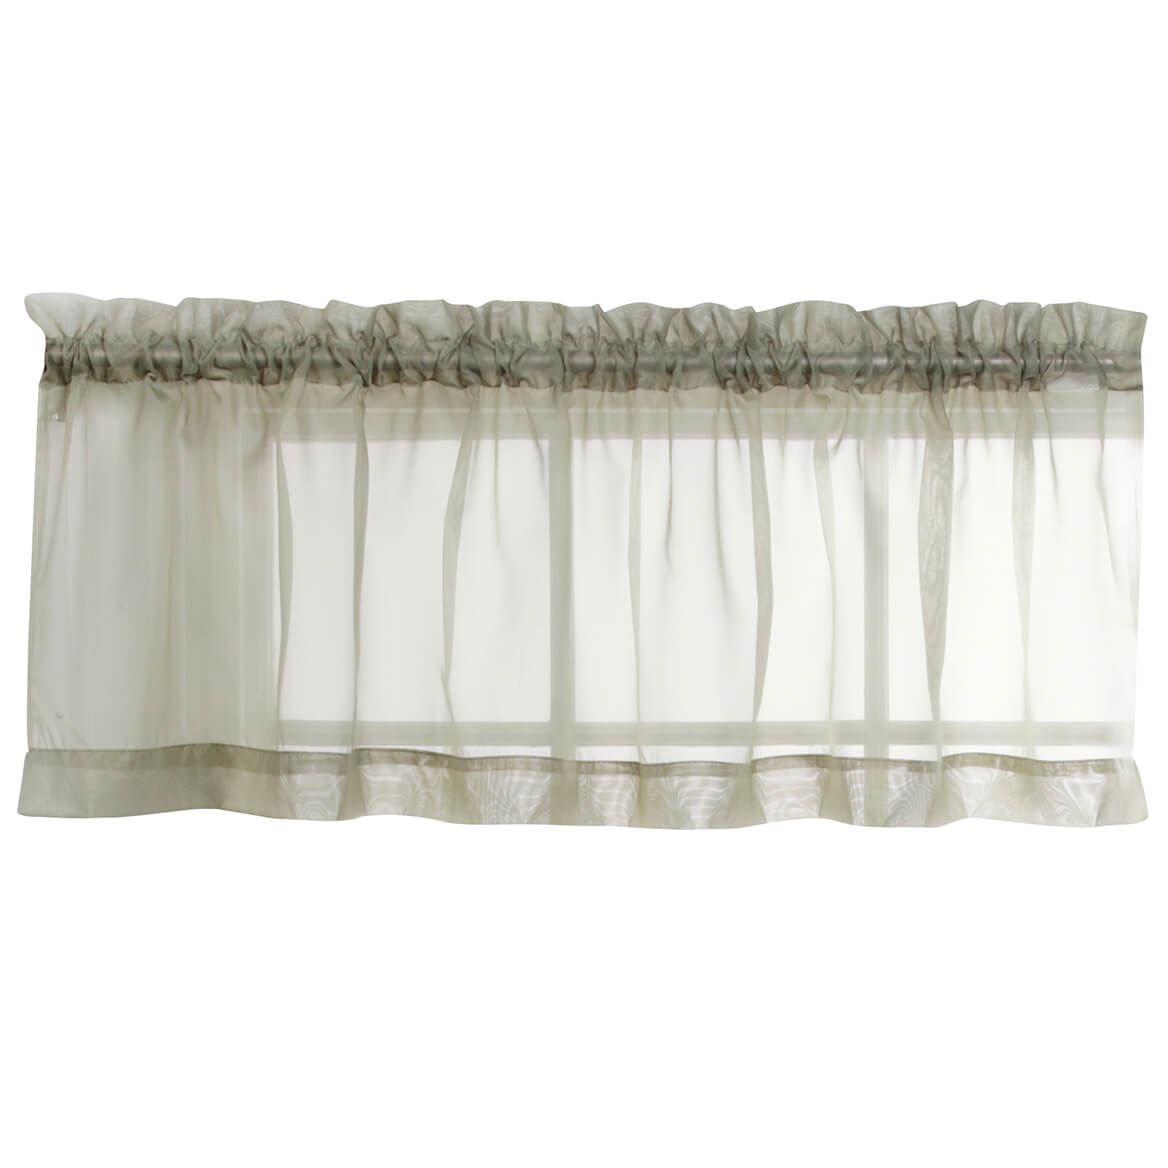 Voile Valance Part - 20: ... Picture 3 of 3